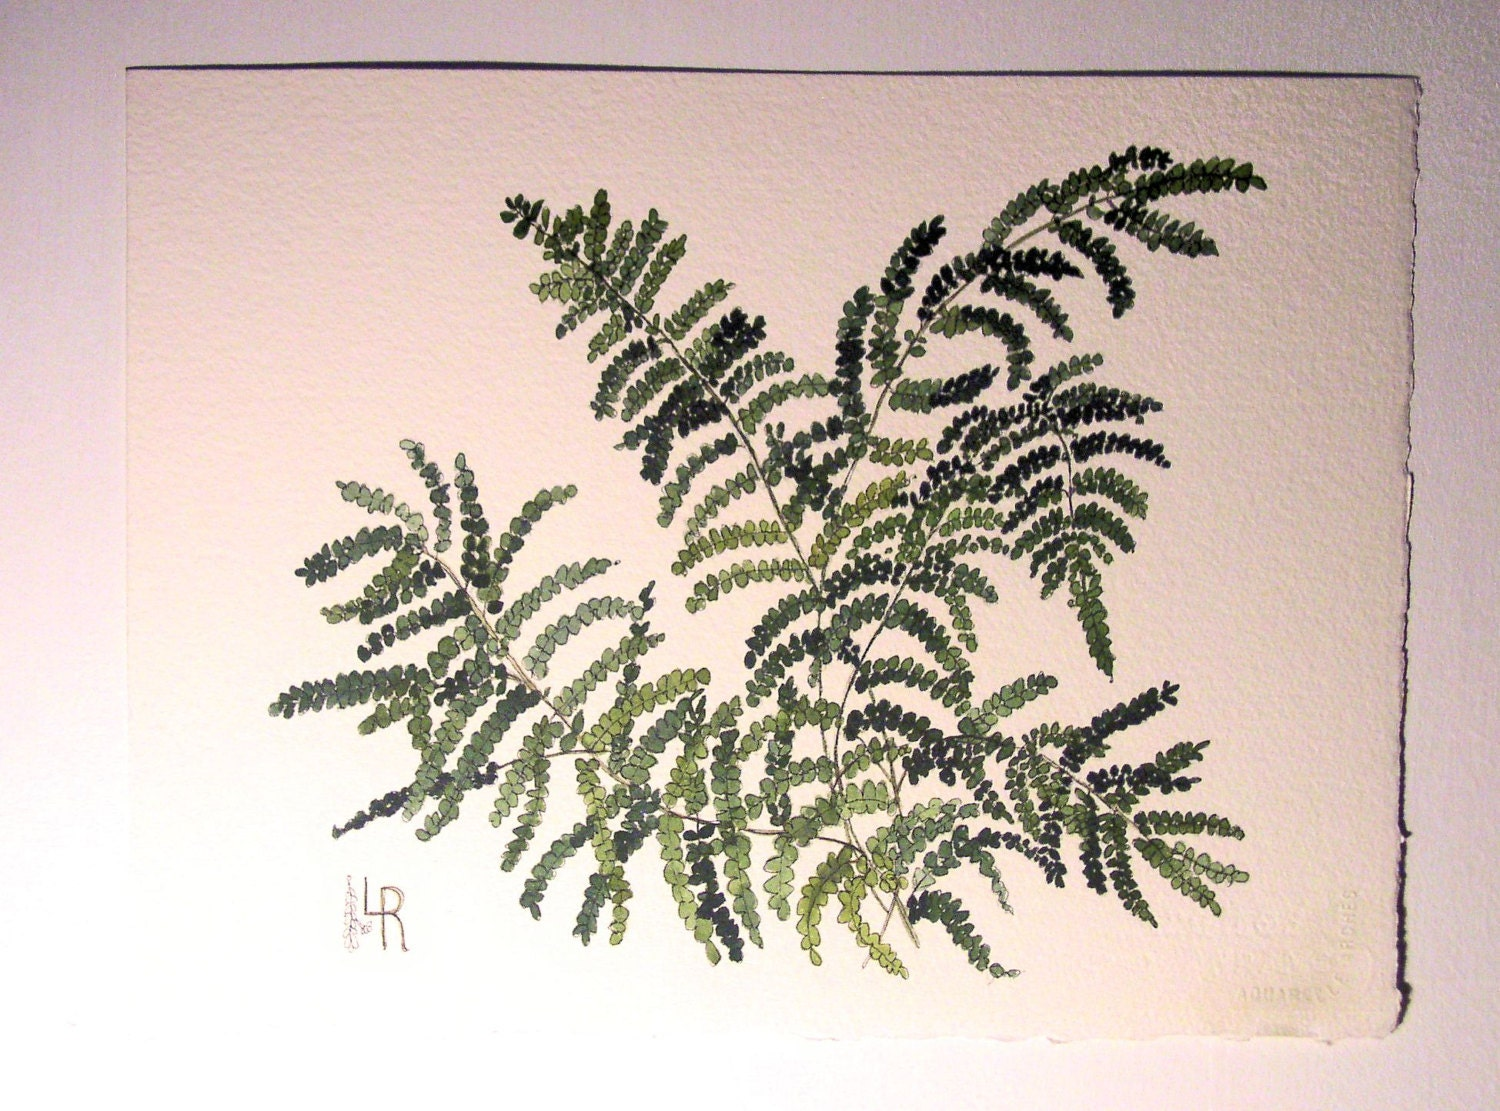 Watercolor Painting Botanical Garden Woodland Fern Illustration Artwork by Laurie Rohner